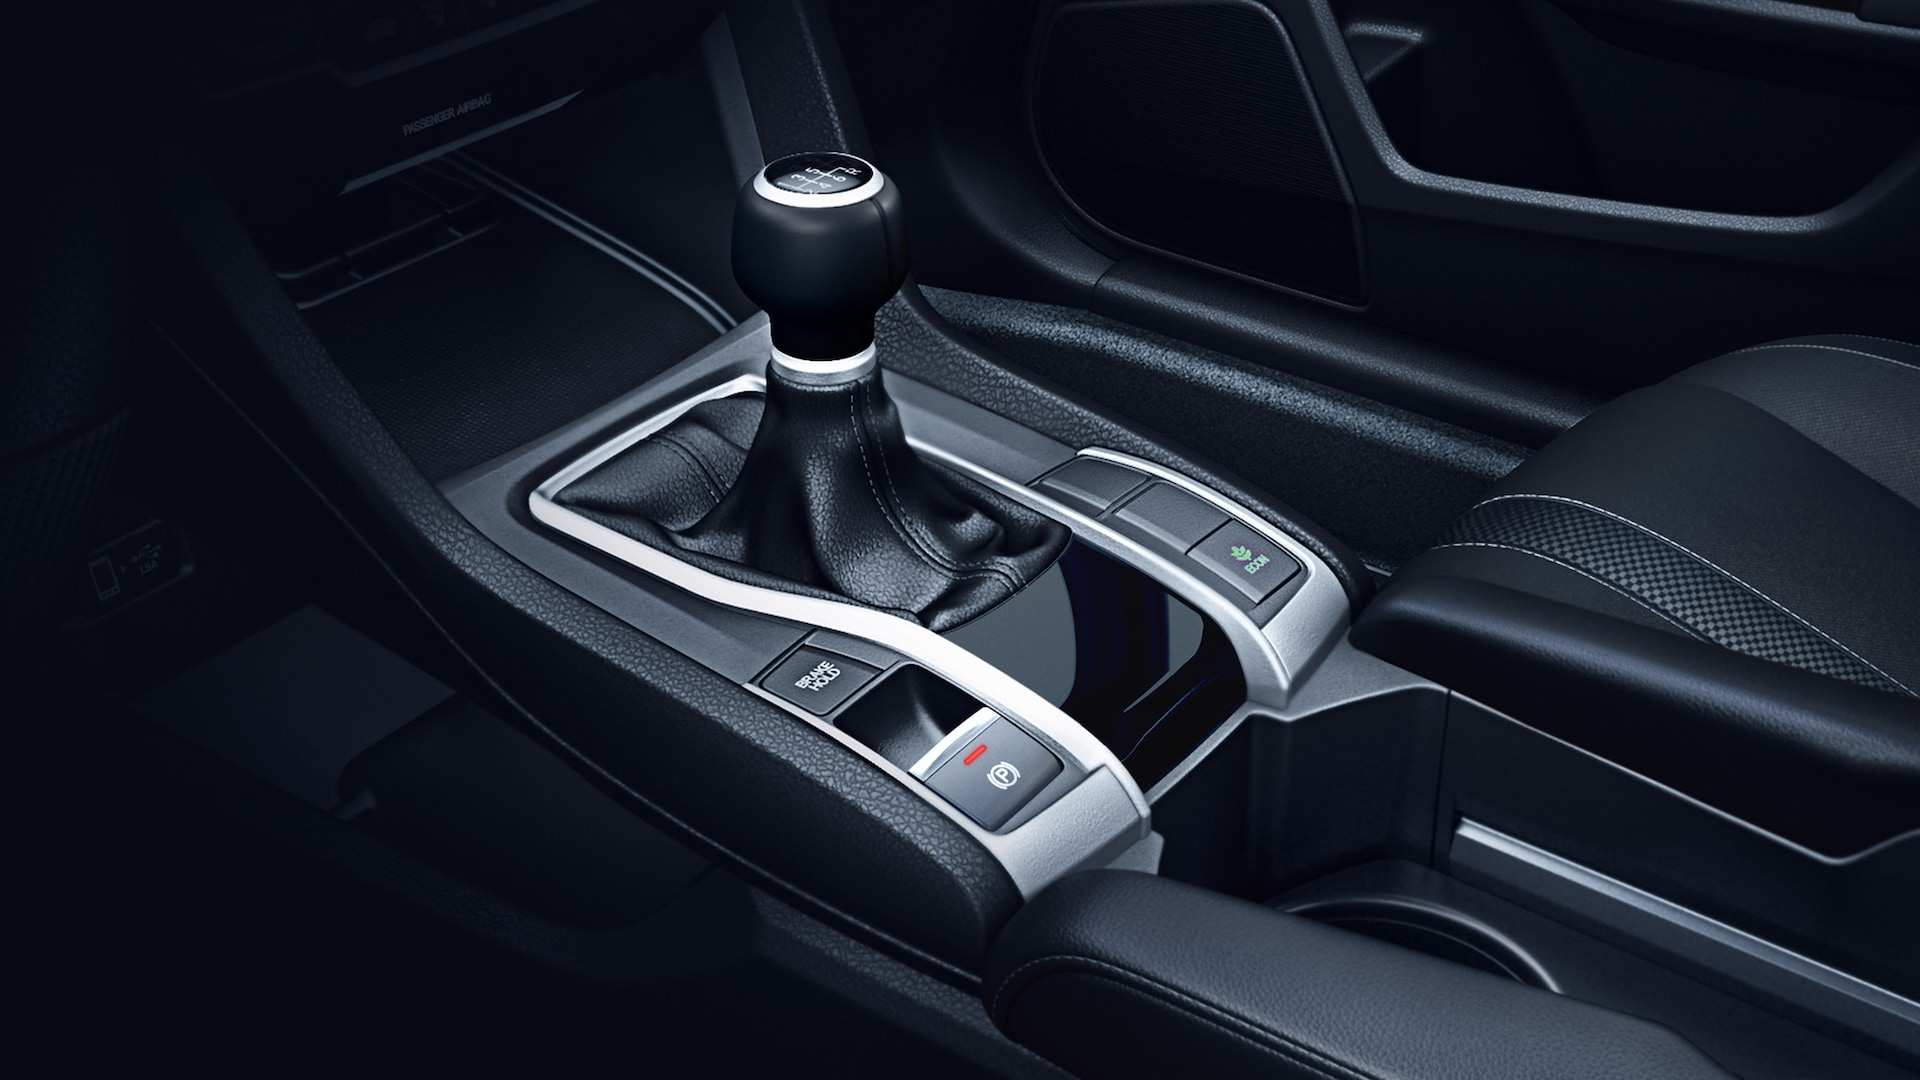 6-speed manual transmission shifter detail in the 2020 Honda Civic Sport Coupe.